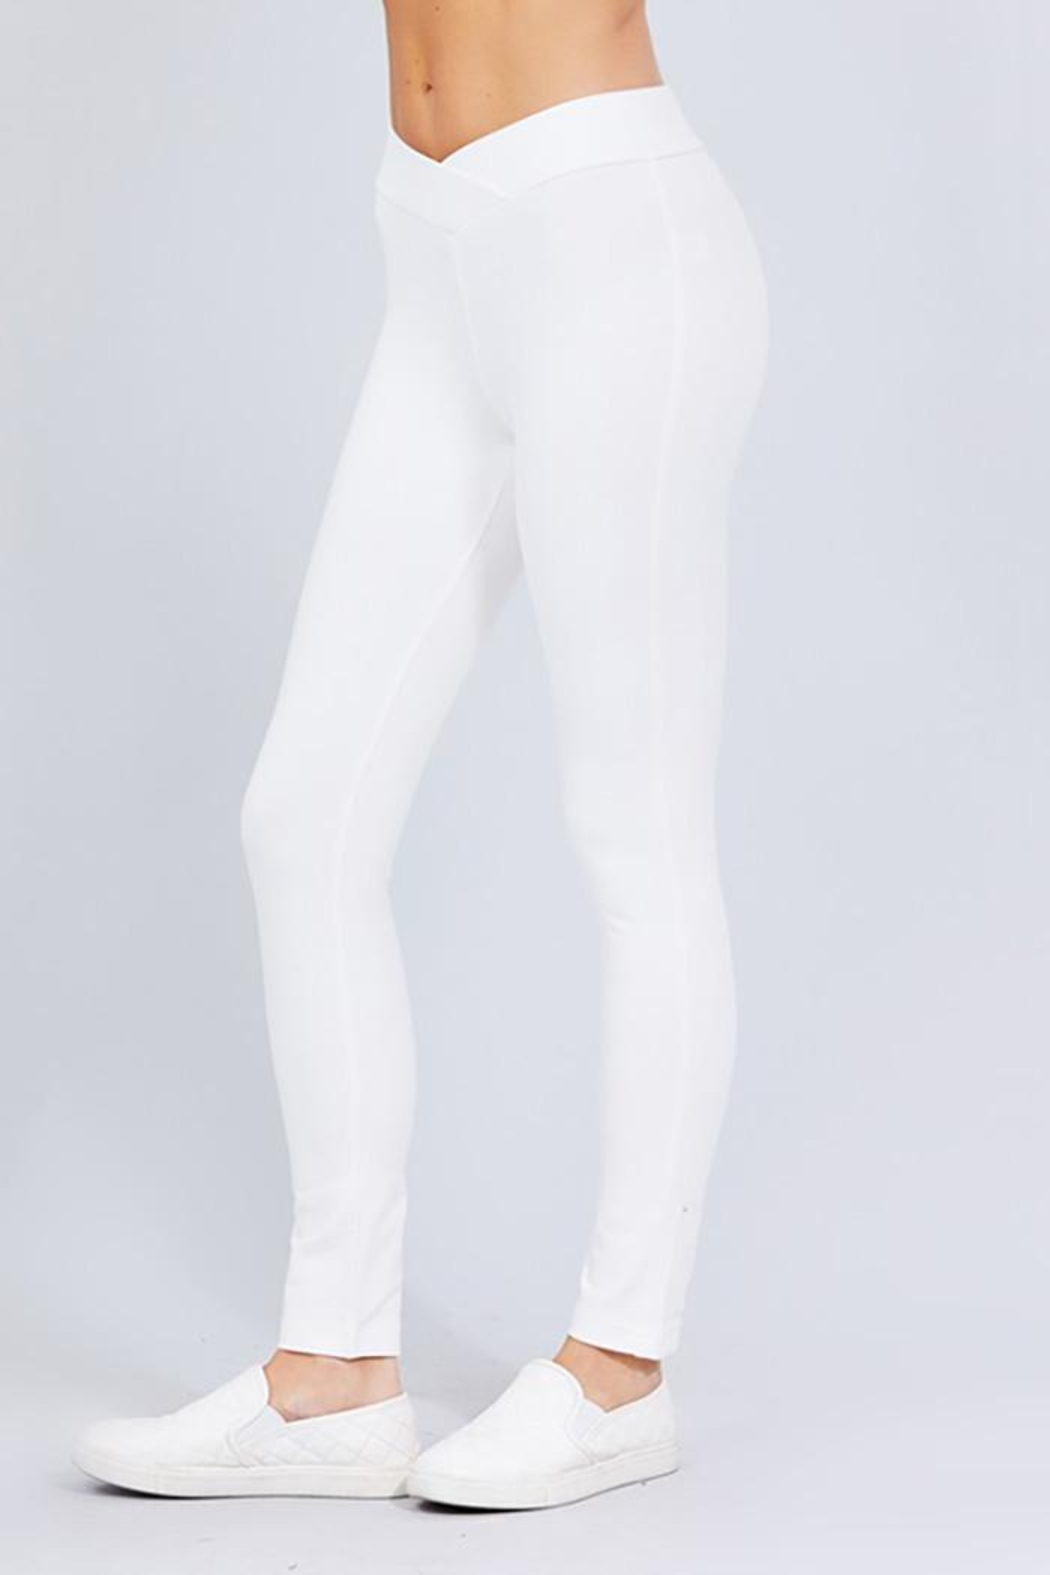 Active Basic Seagull Shaped Elastic Waist Skinny Ponte Pants - Main Image